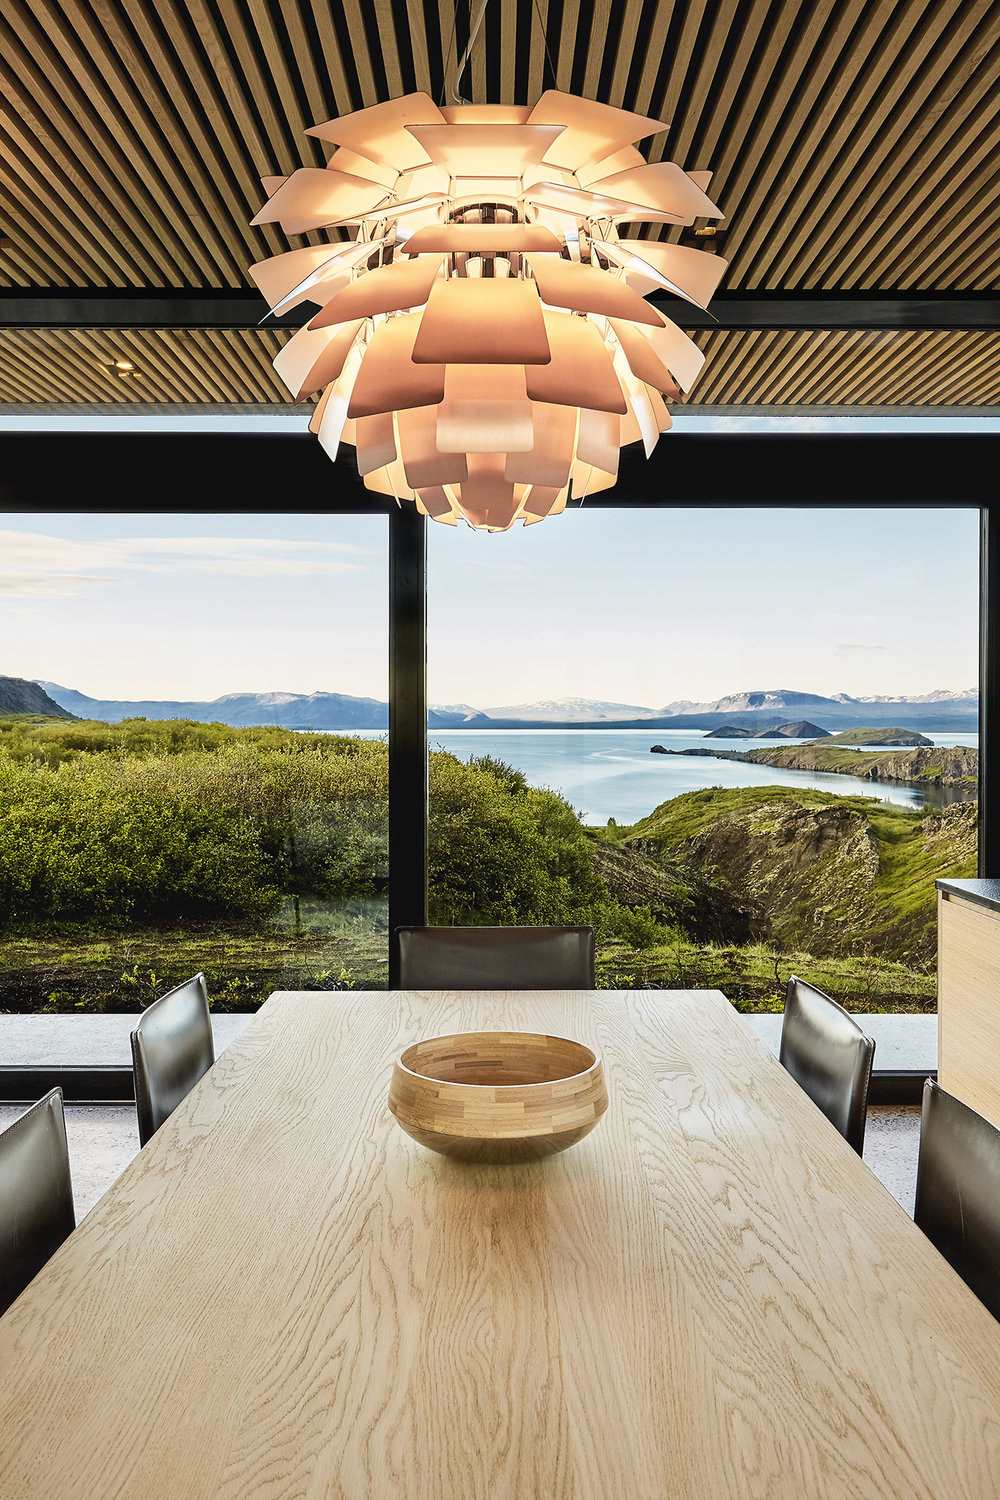 The dining space is done with black leather chairs and a light colored wooden table and look at those views